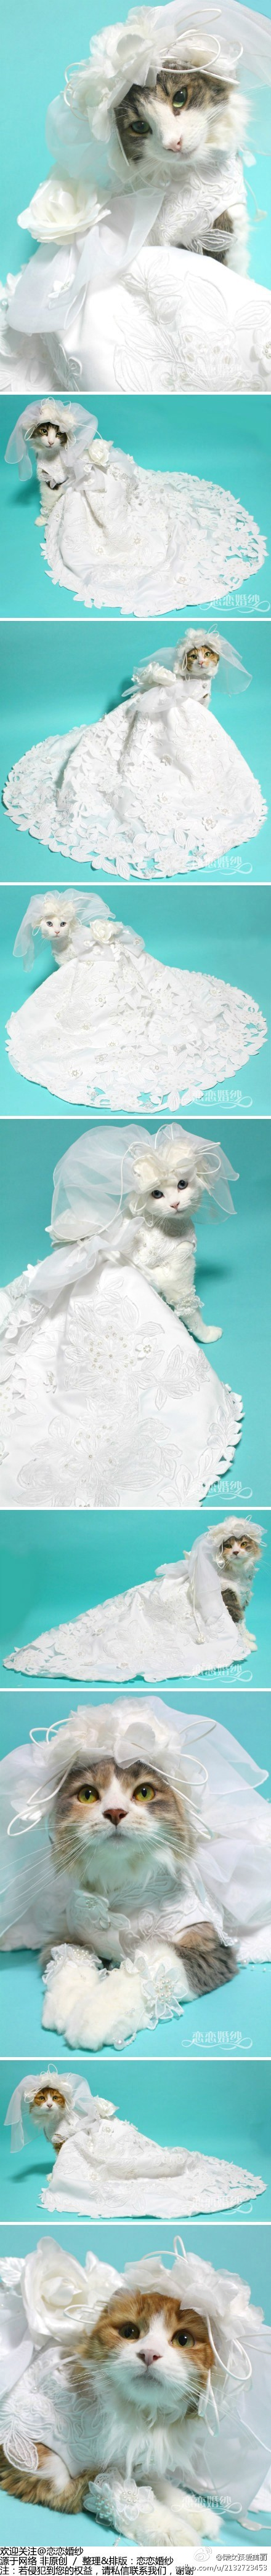 Cat in wedding dress  Cats in Wedding Dresses Thank you internet for this I will cherish